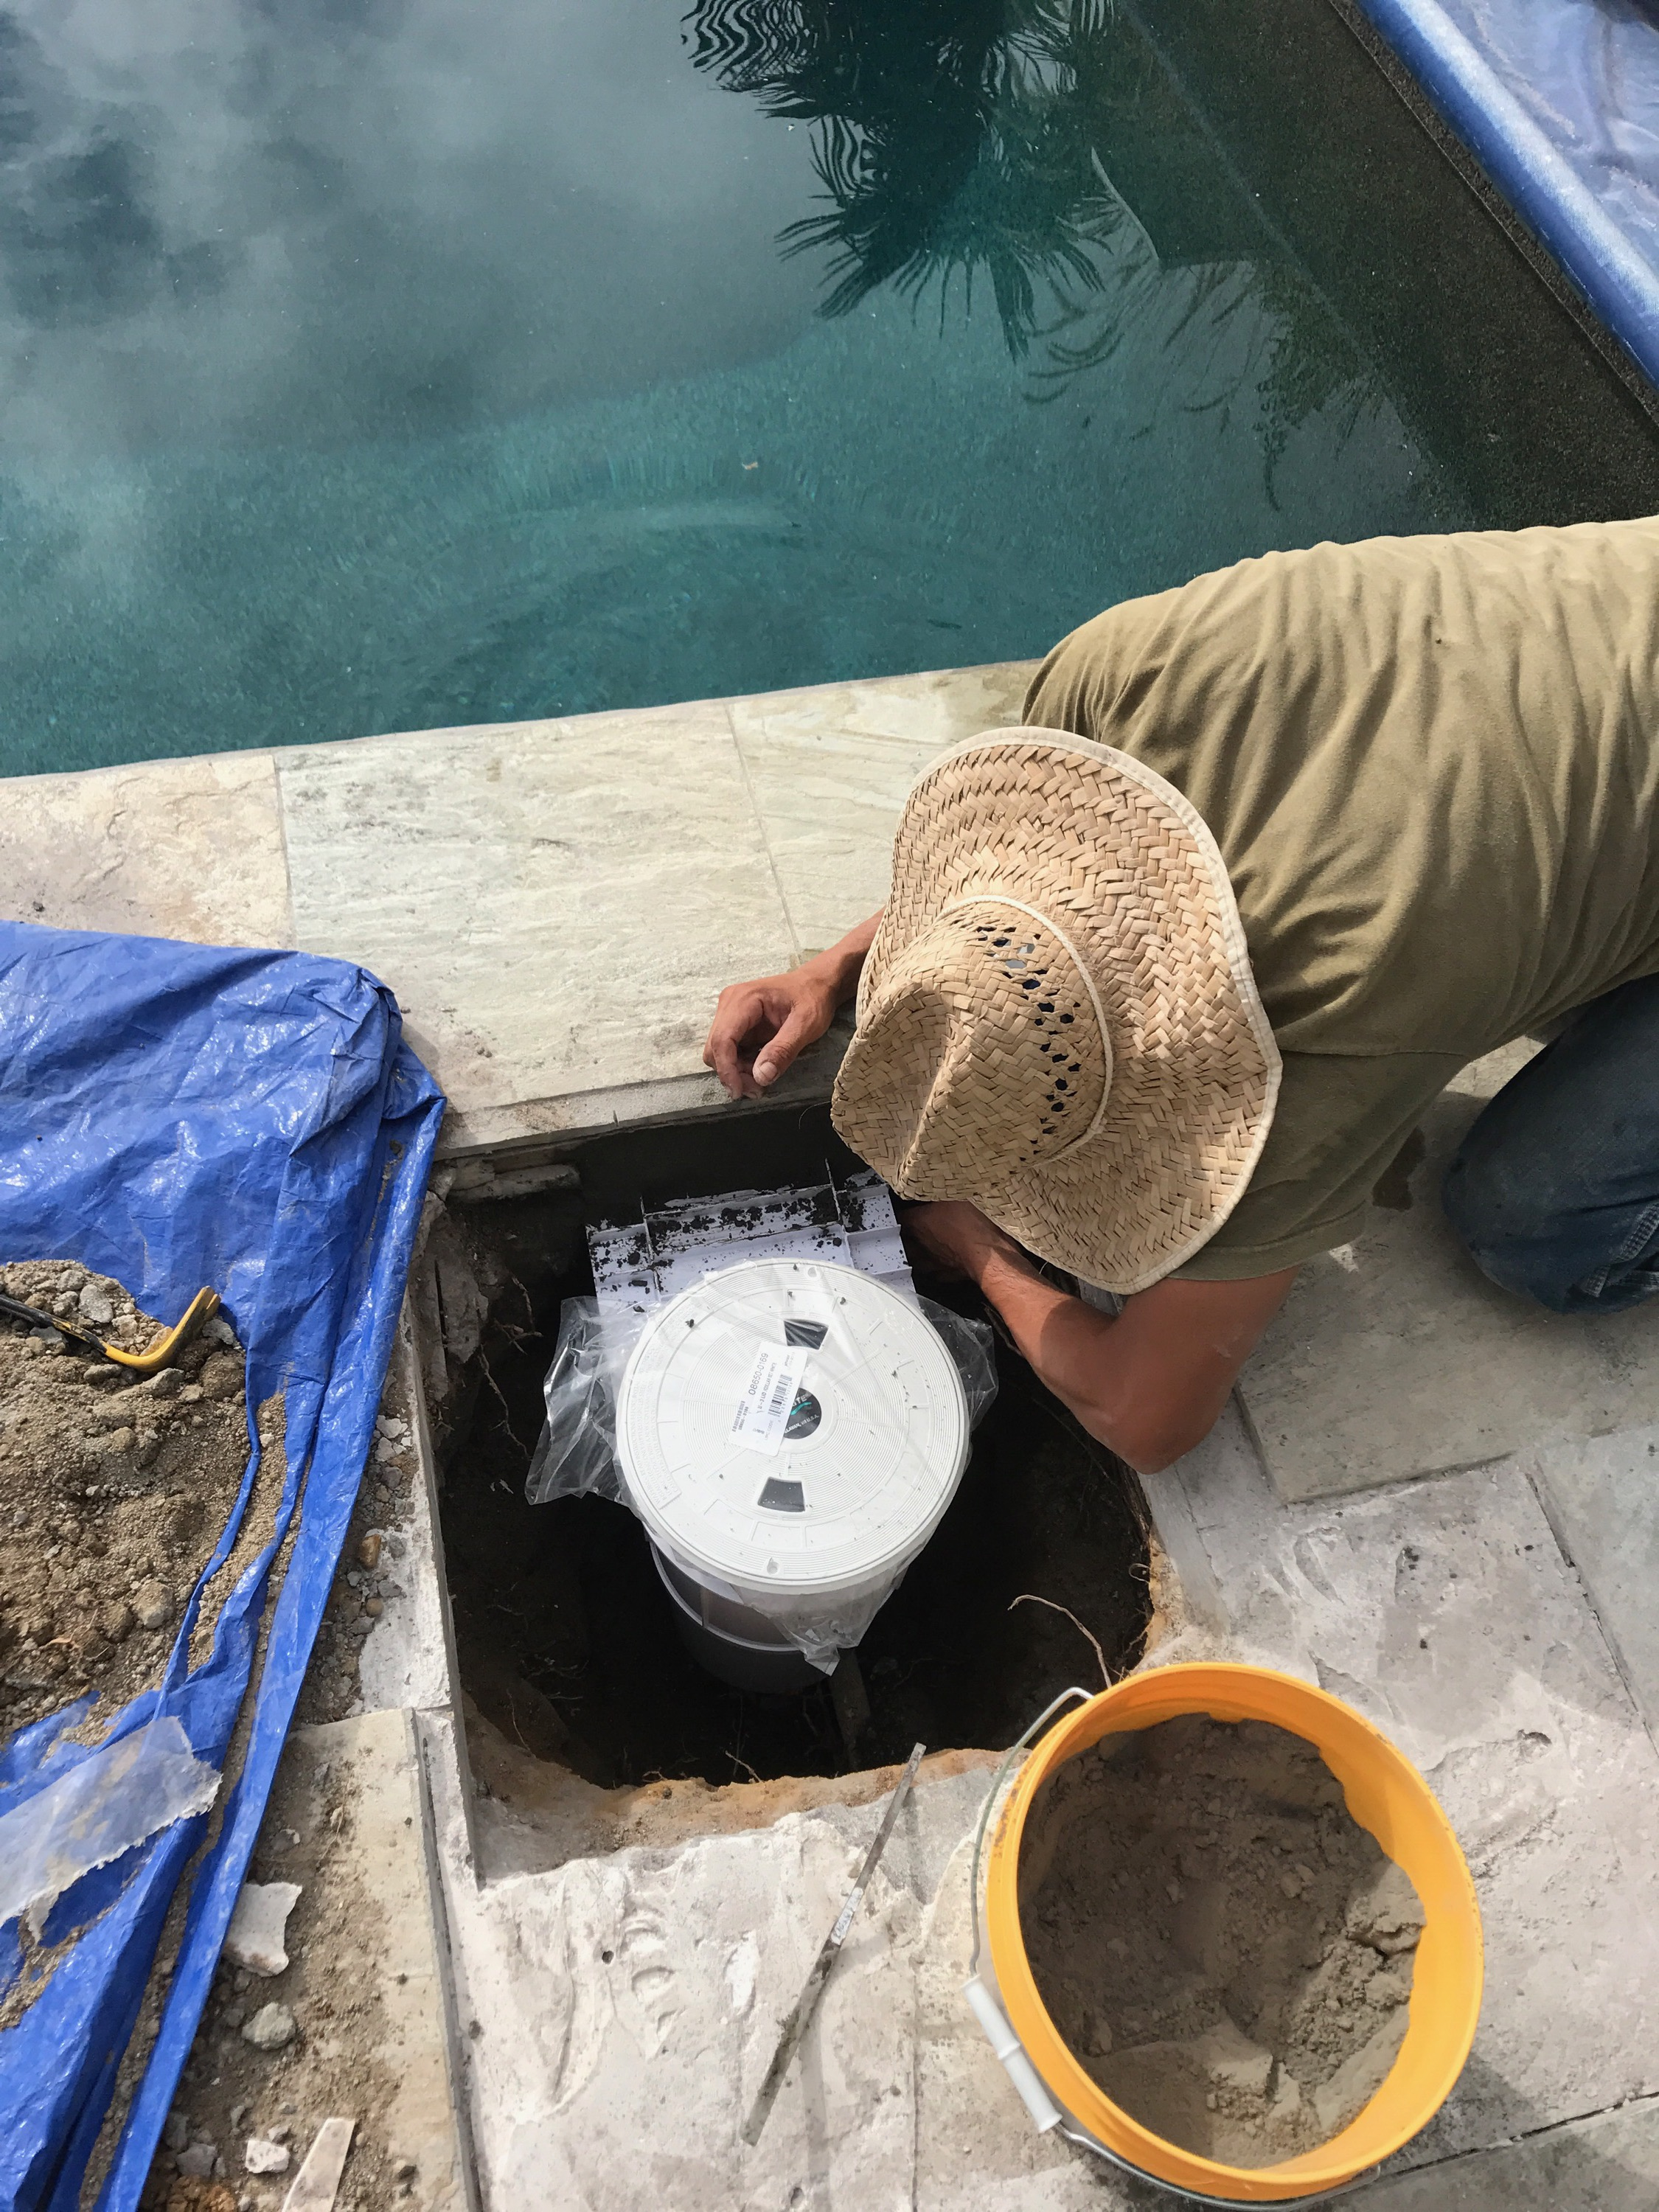 La Jolla Pool Skimmer Leak Repair Swim Care Pool Services